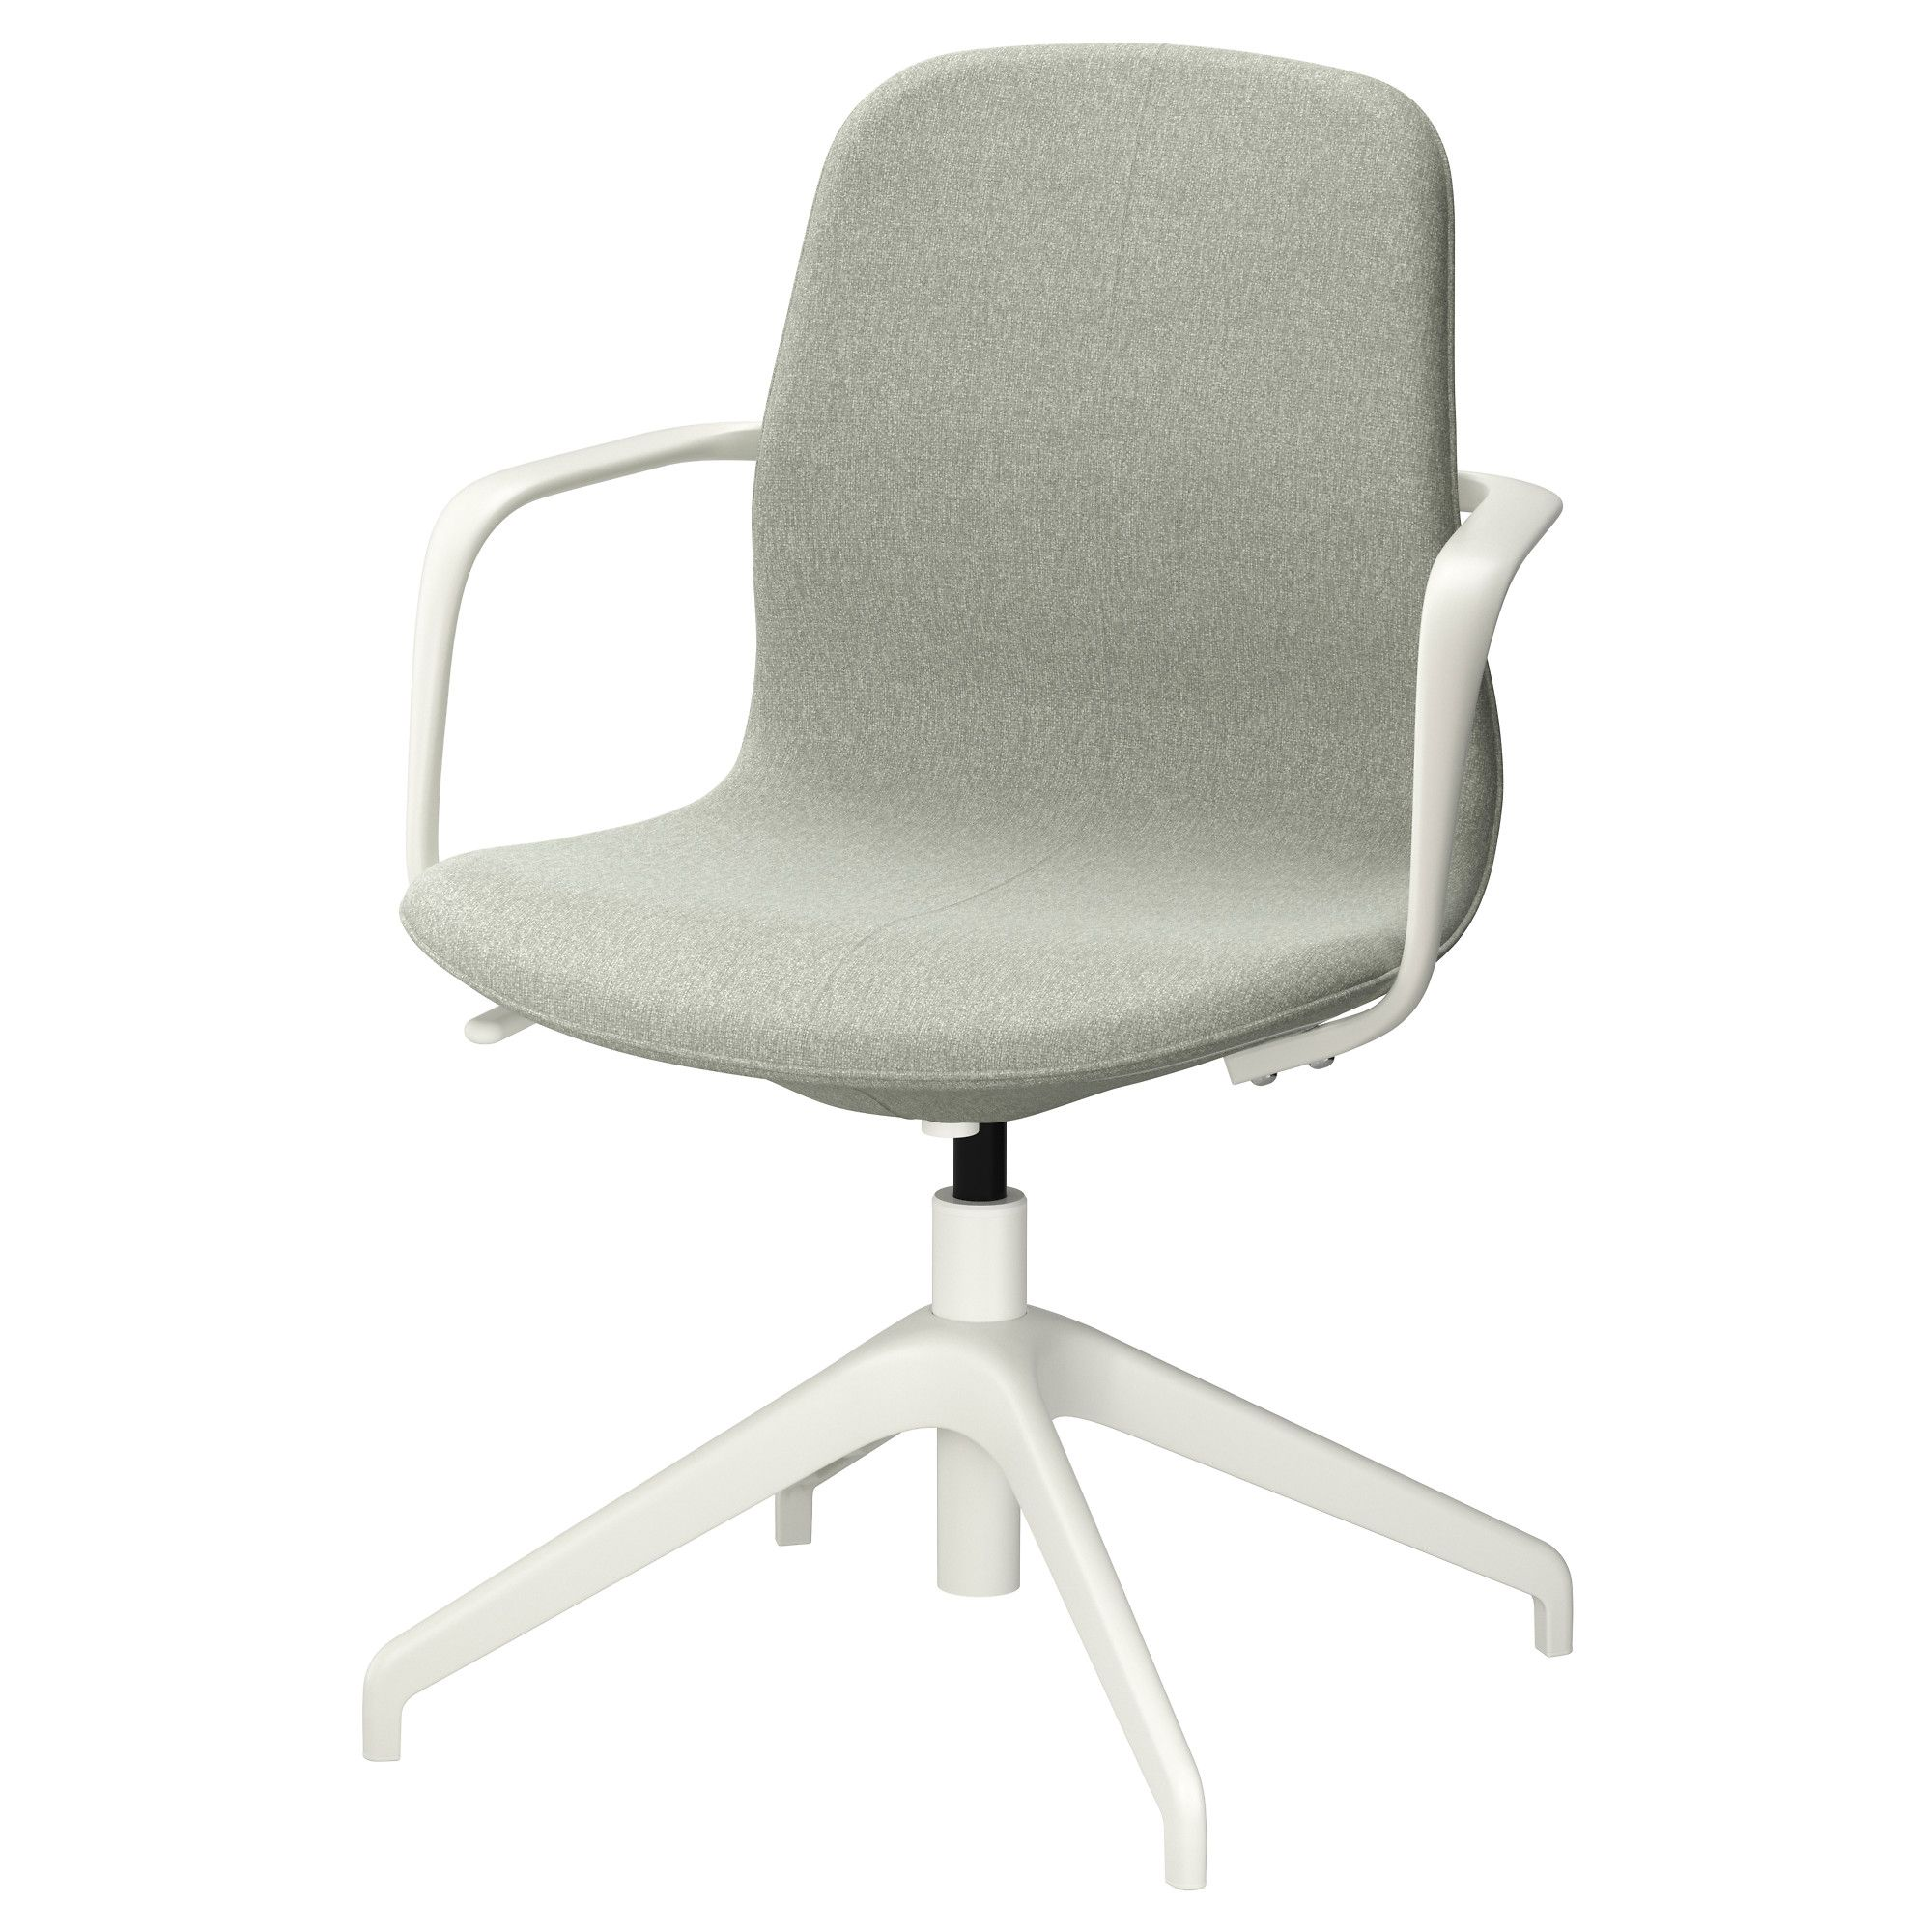 Shop for Furniture, Home Accessories & More Chair, Ikea